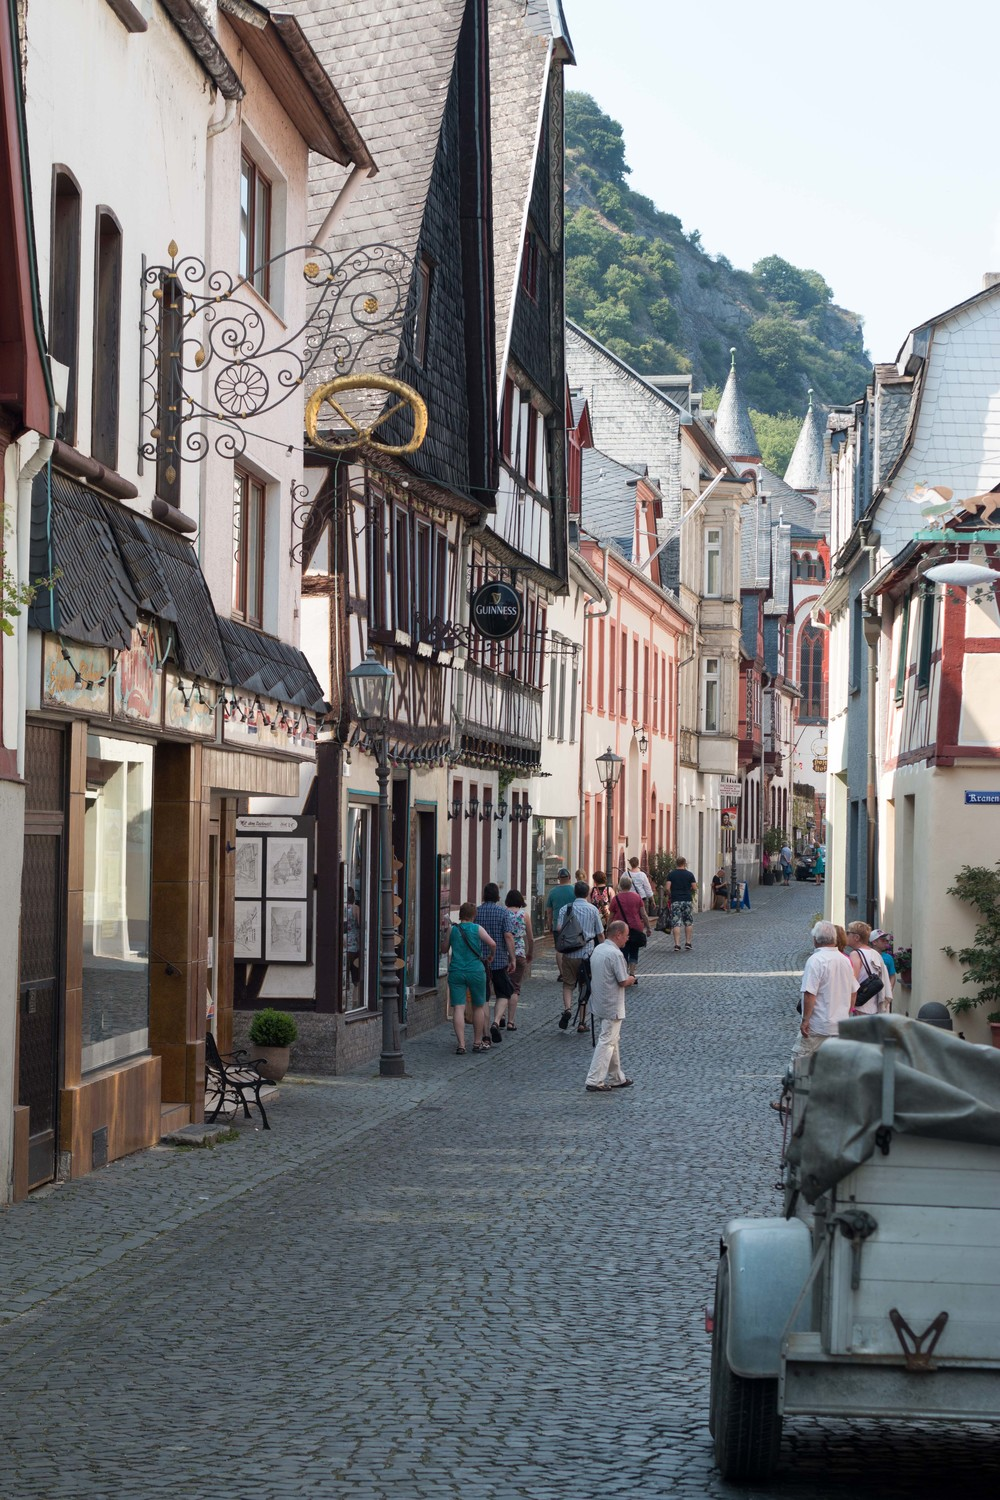 One of the main streets in bacharach